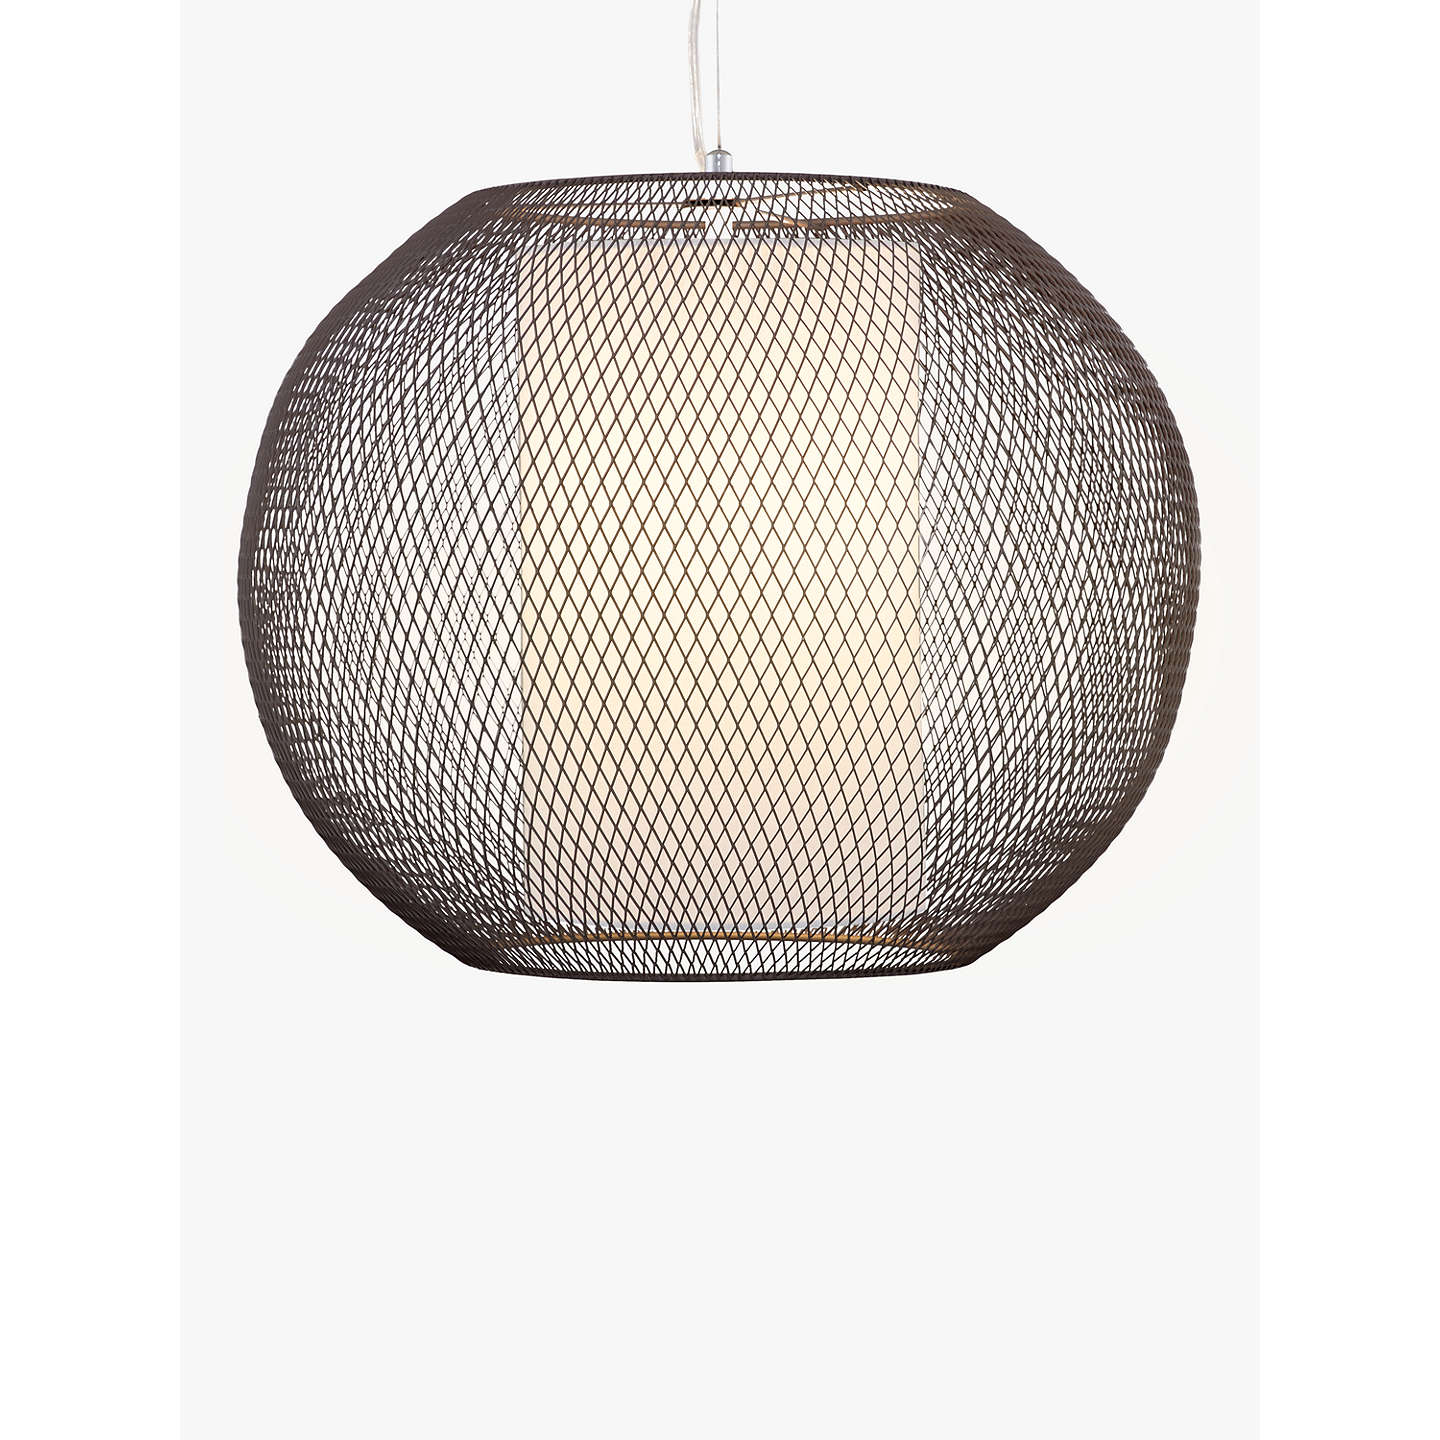 John lewis freya dual layer ceiling pendant at john lewis buyjohn lewis freya dual layer ceiling pendant online at johnlewis mozeypictures Image collections